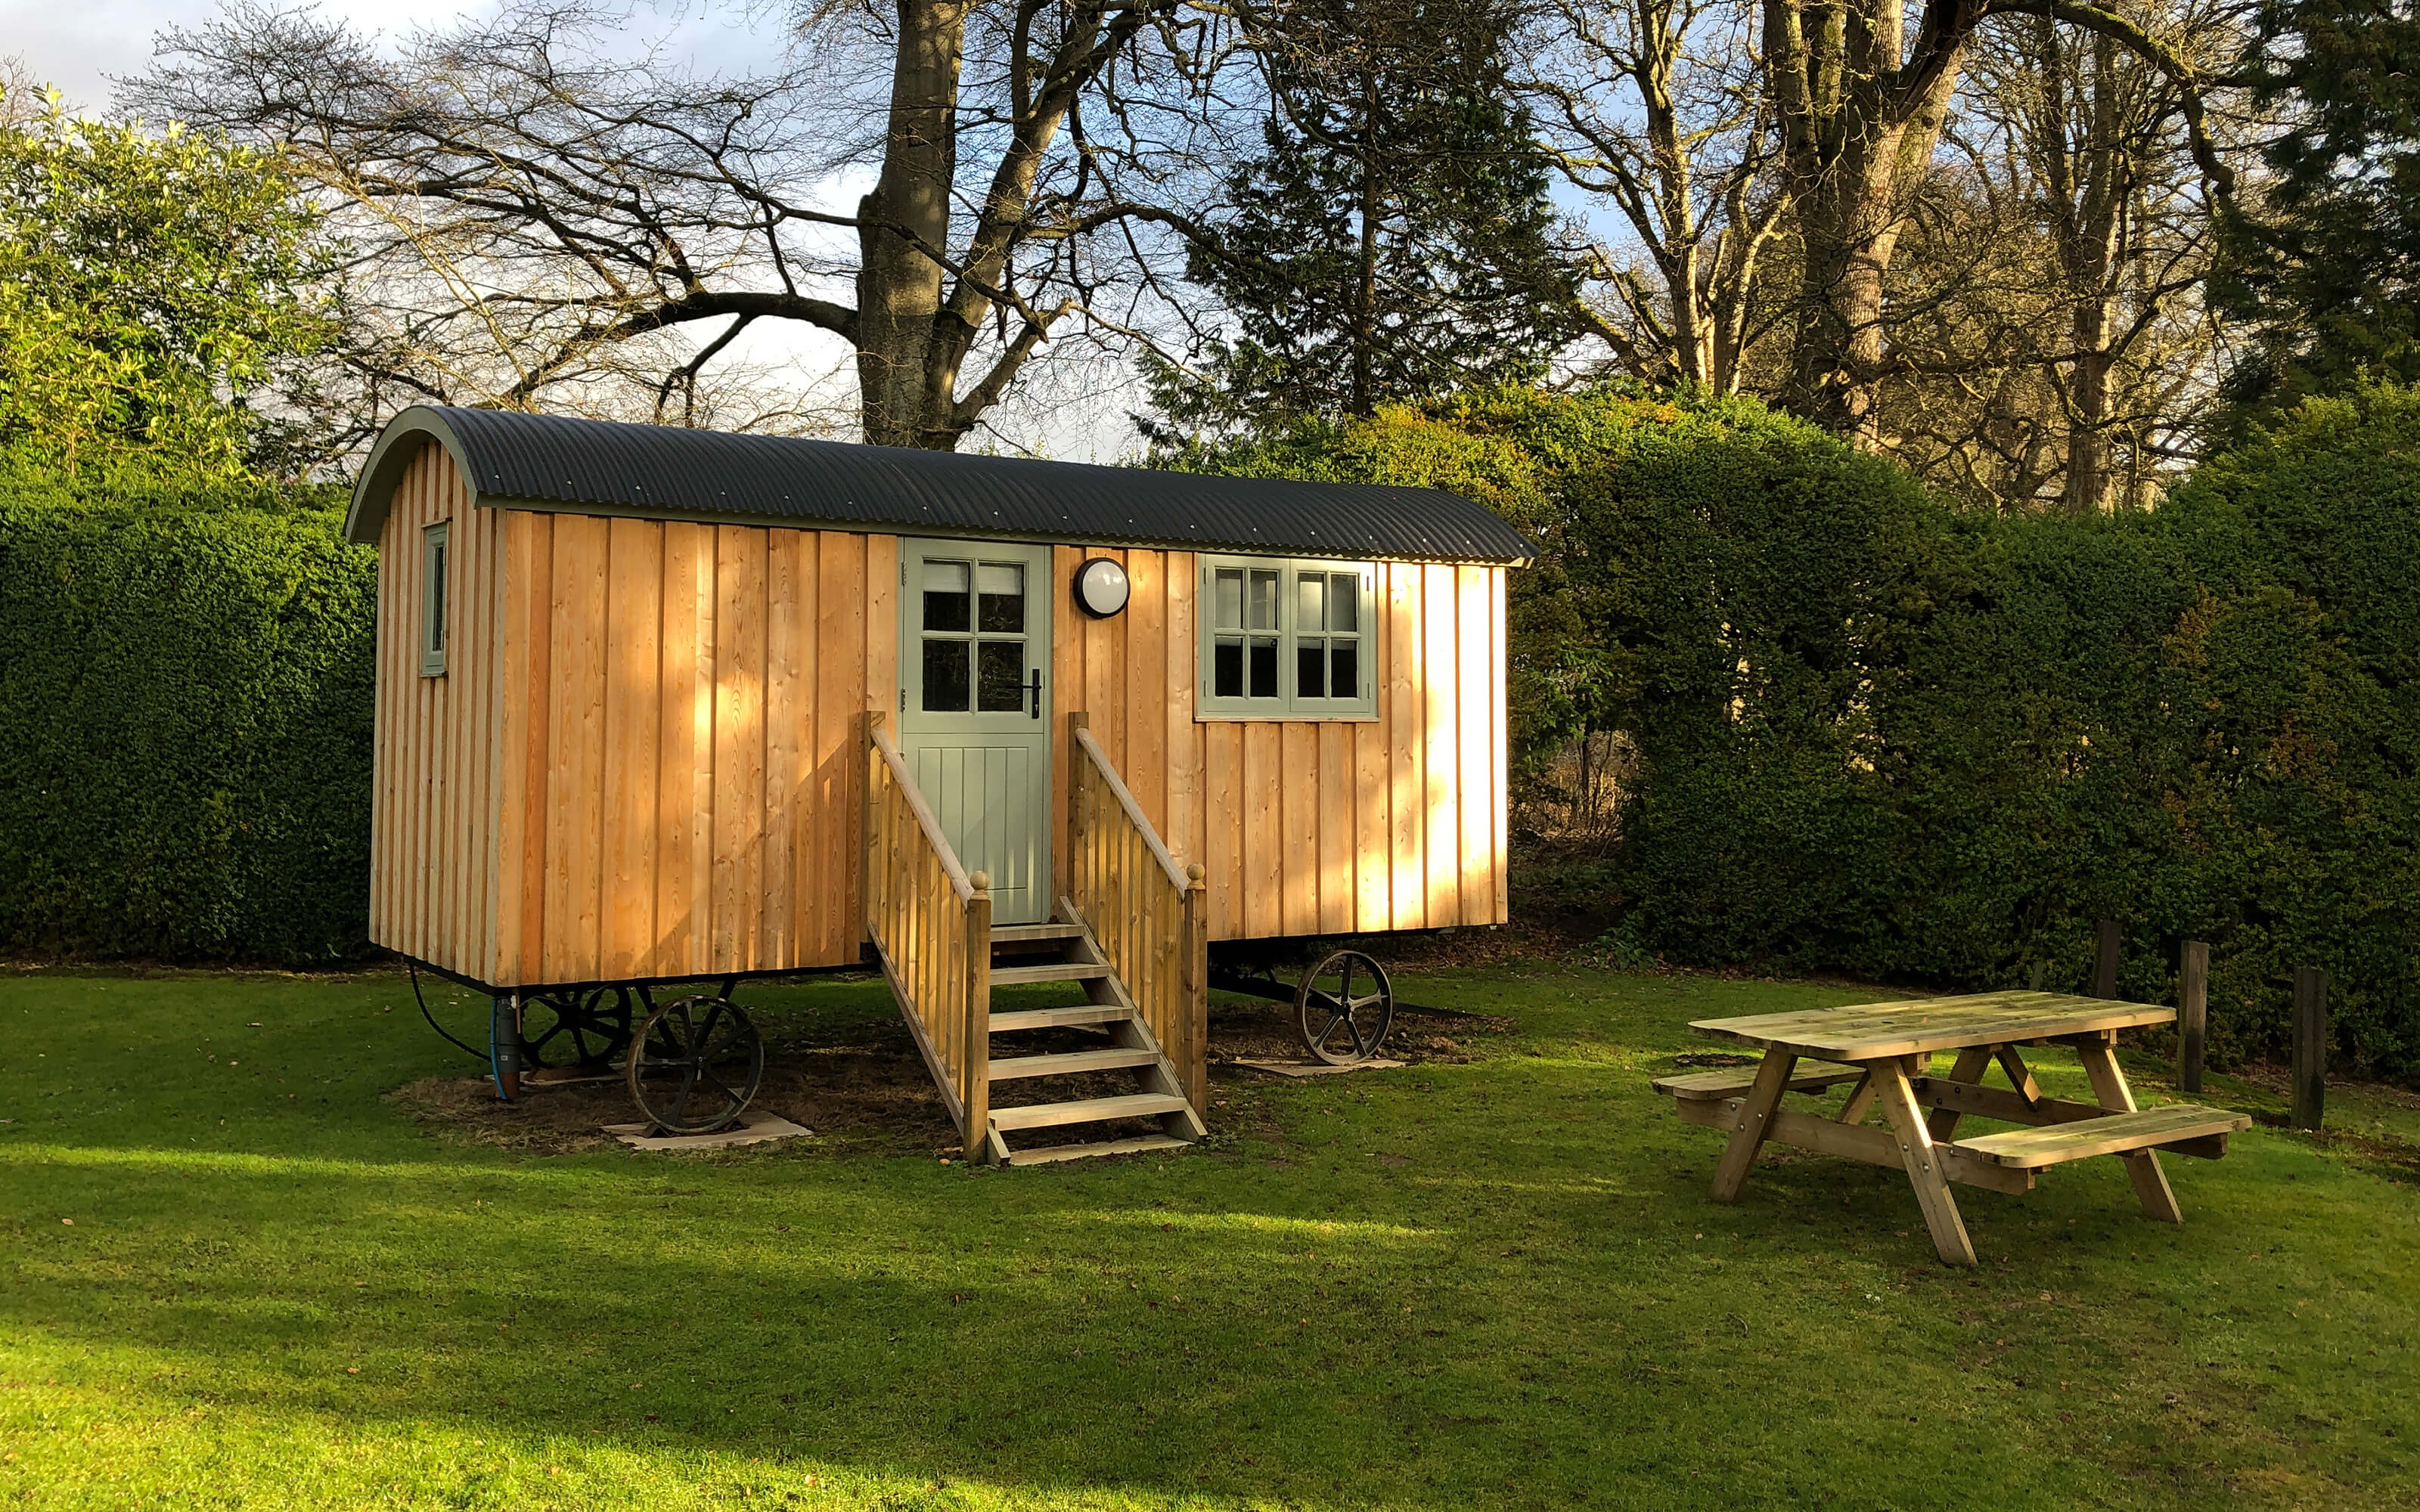 A secluded shepherds hut with a picnic table on the lawn.